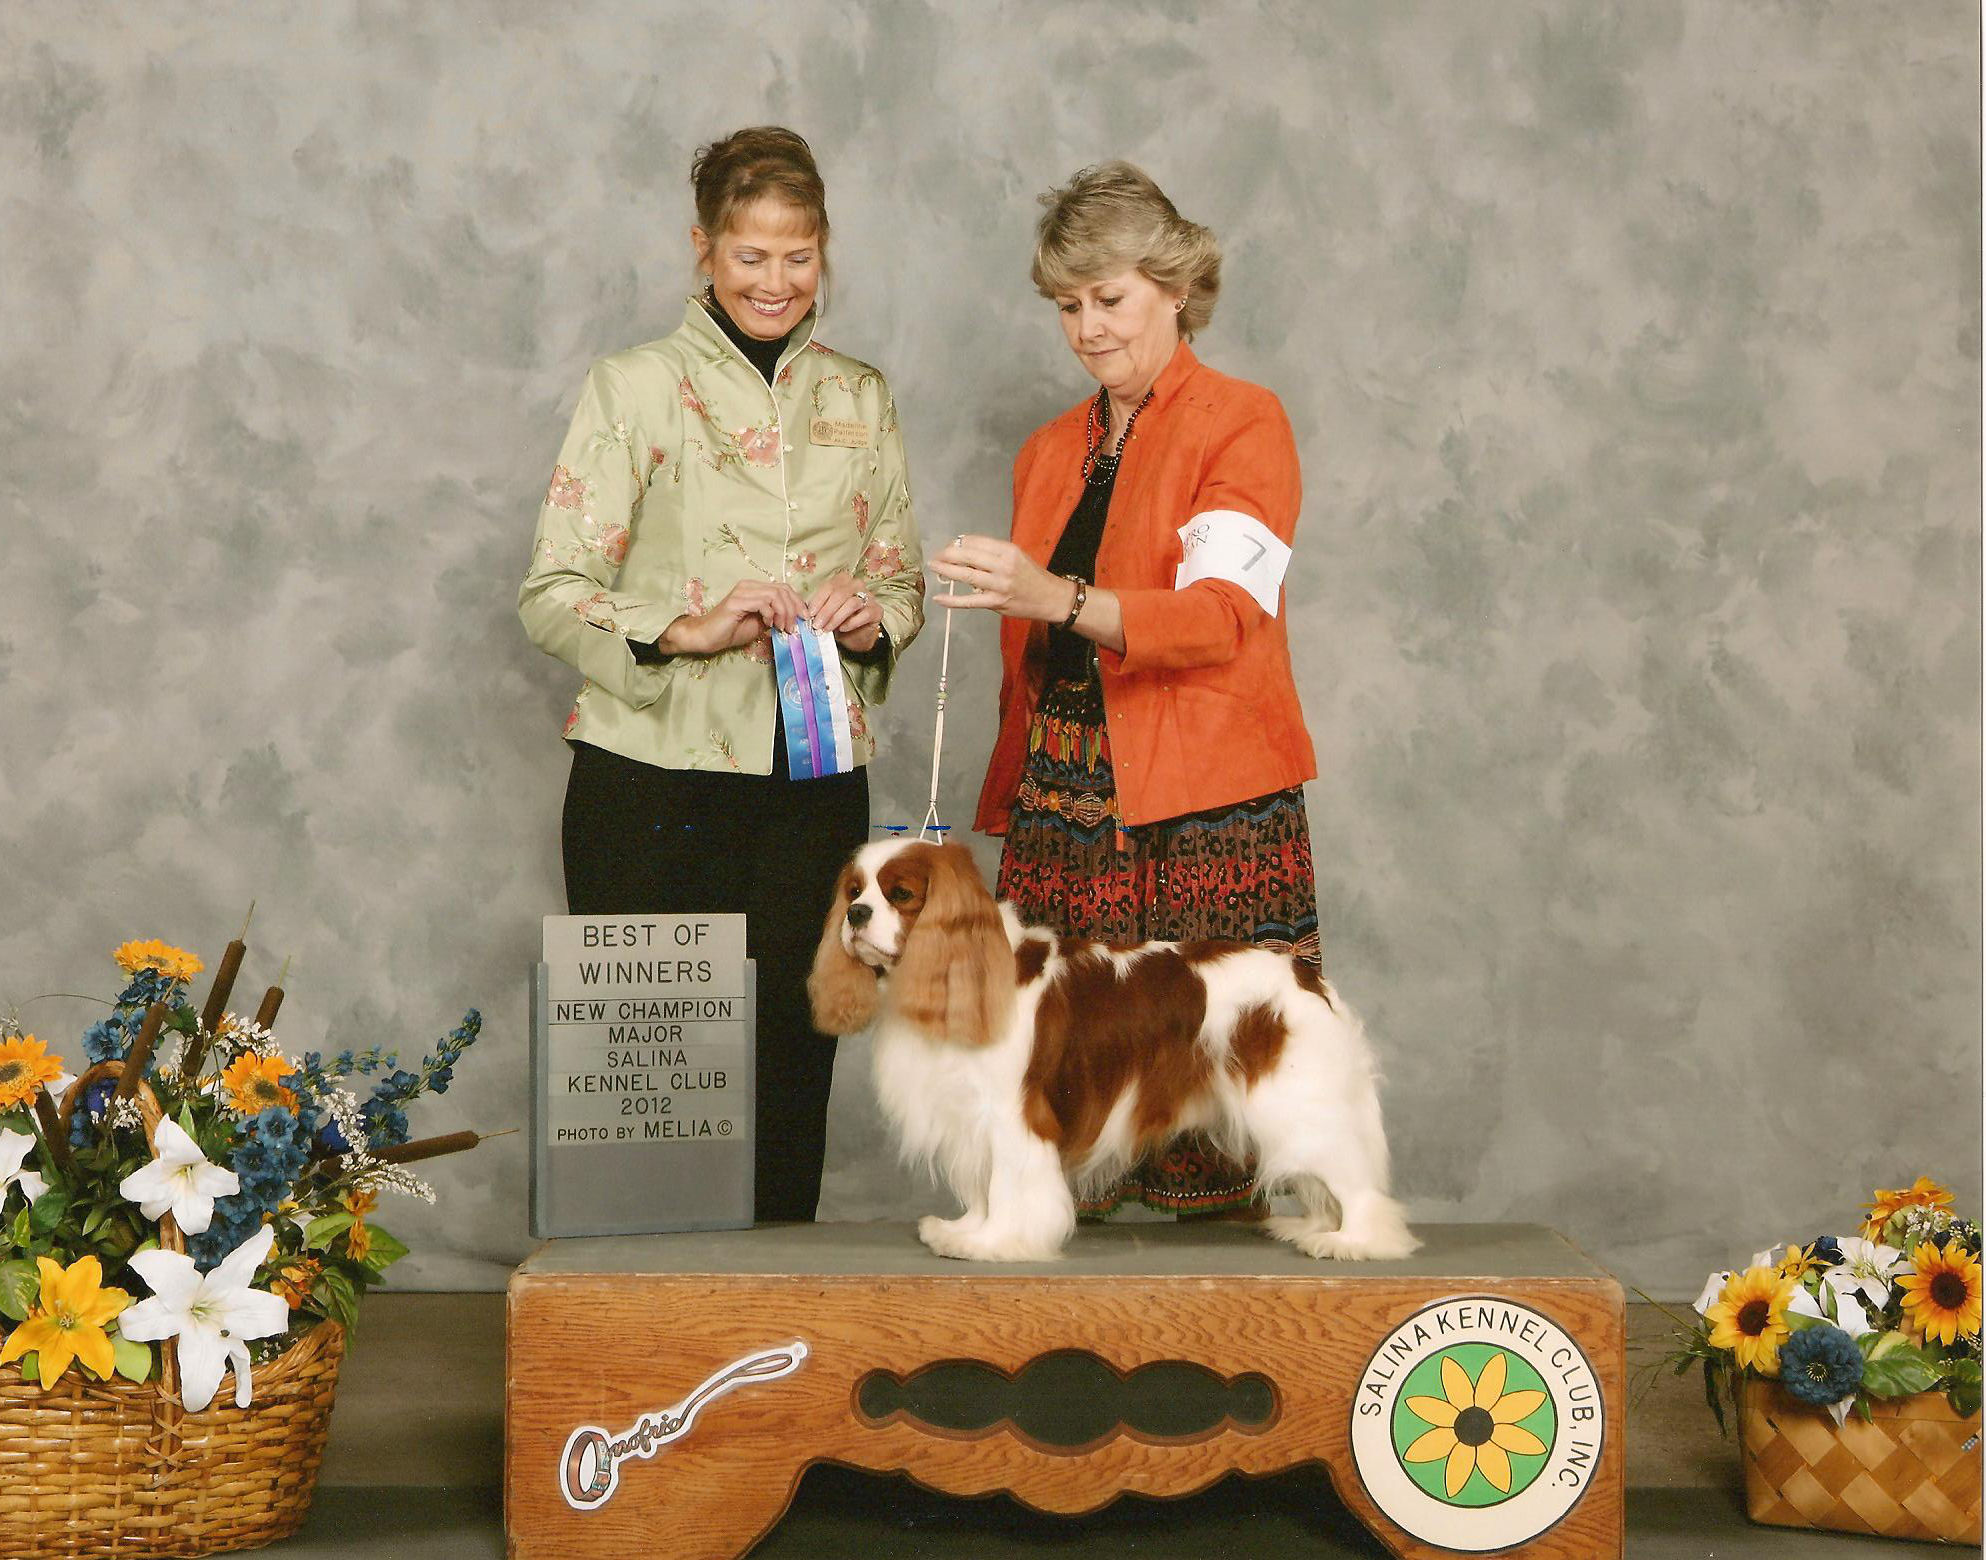 Dallas AKC Champion winning